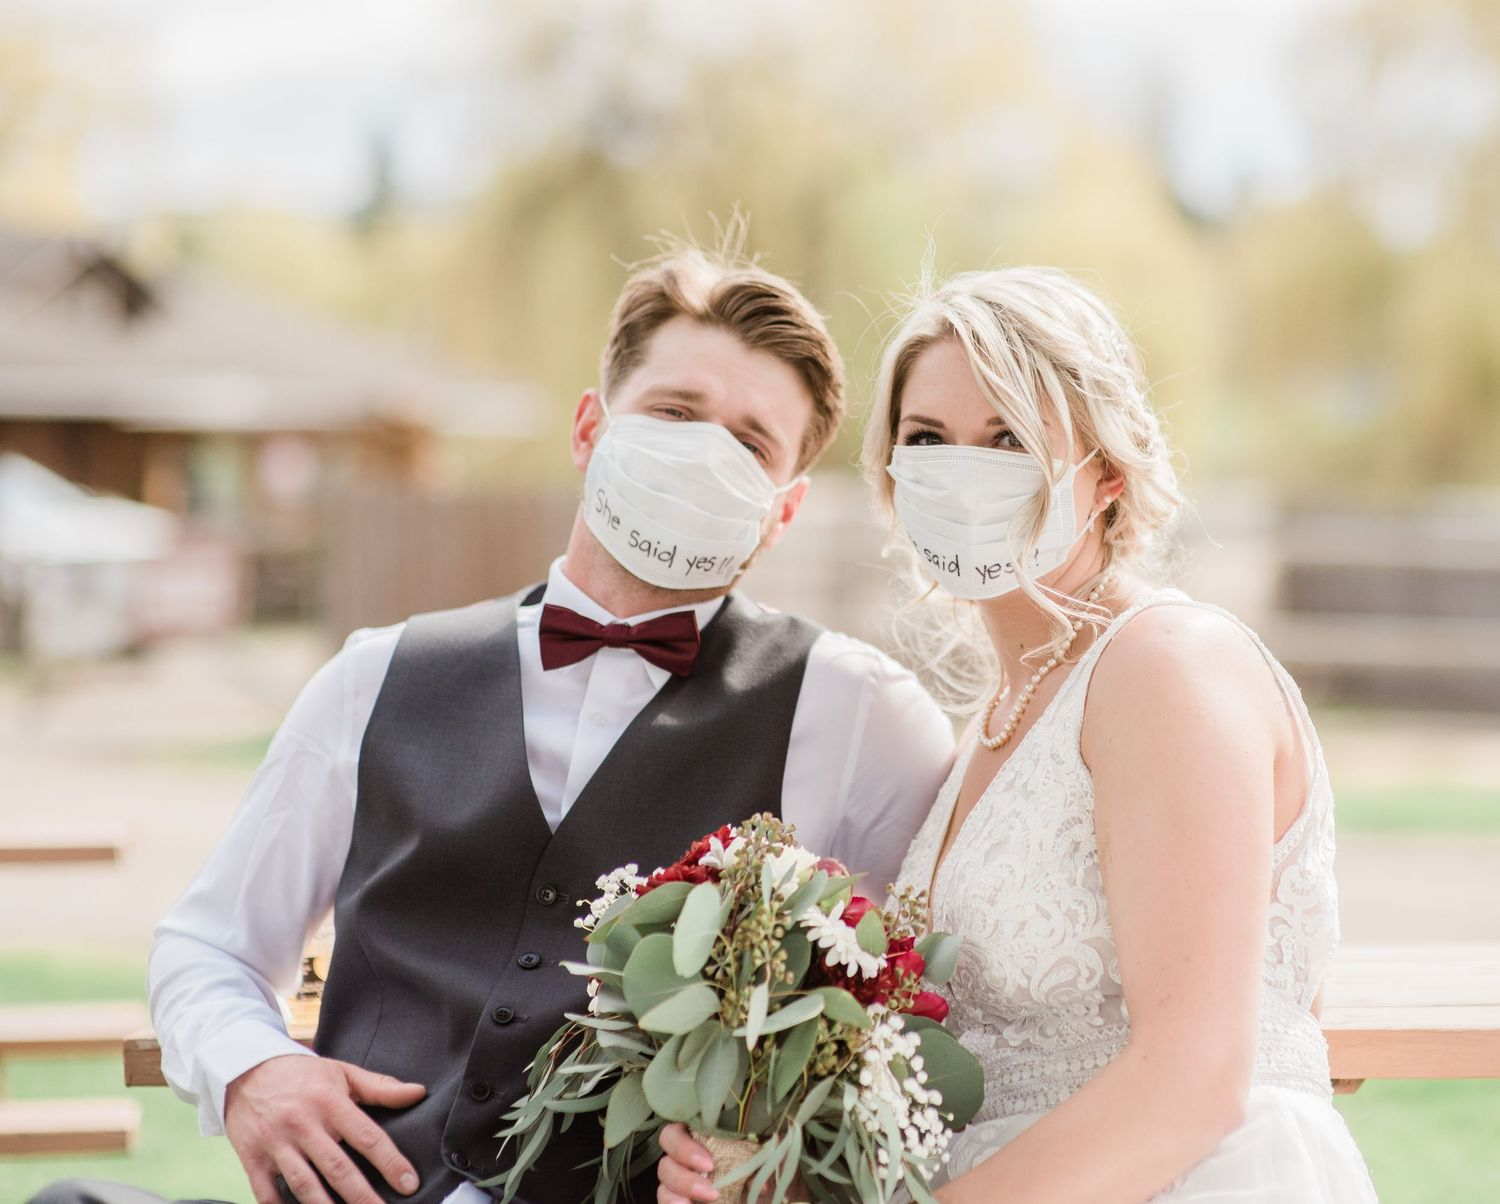 happy-couple-covid-wedding-wearing-masks-small-wedding